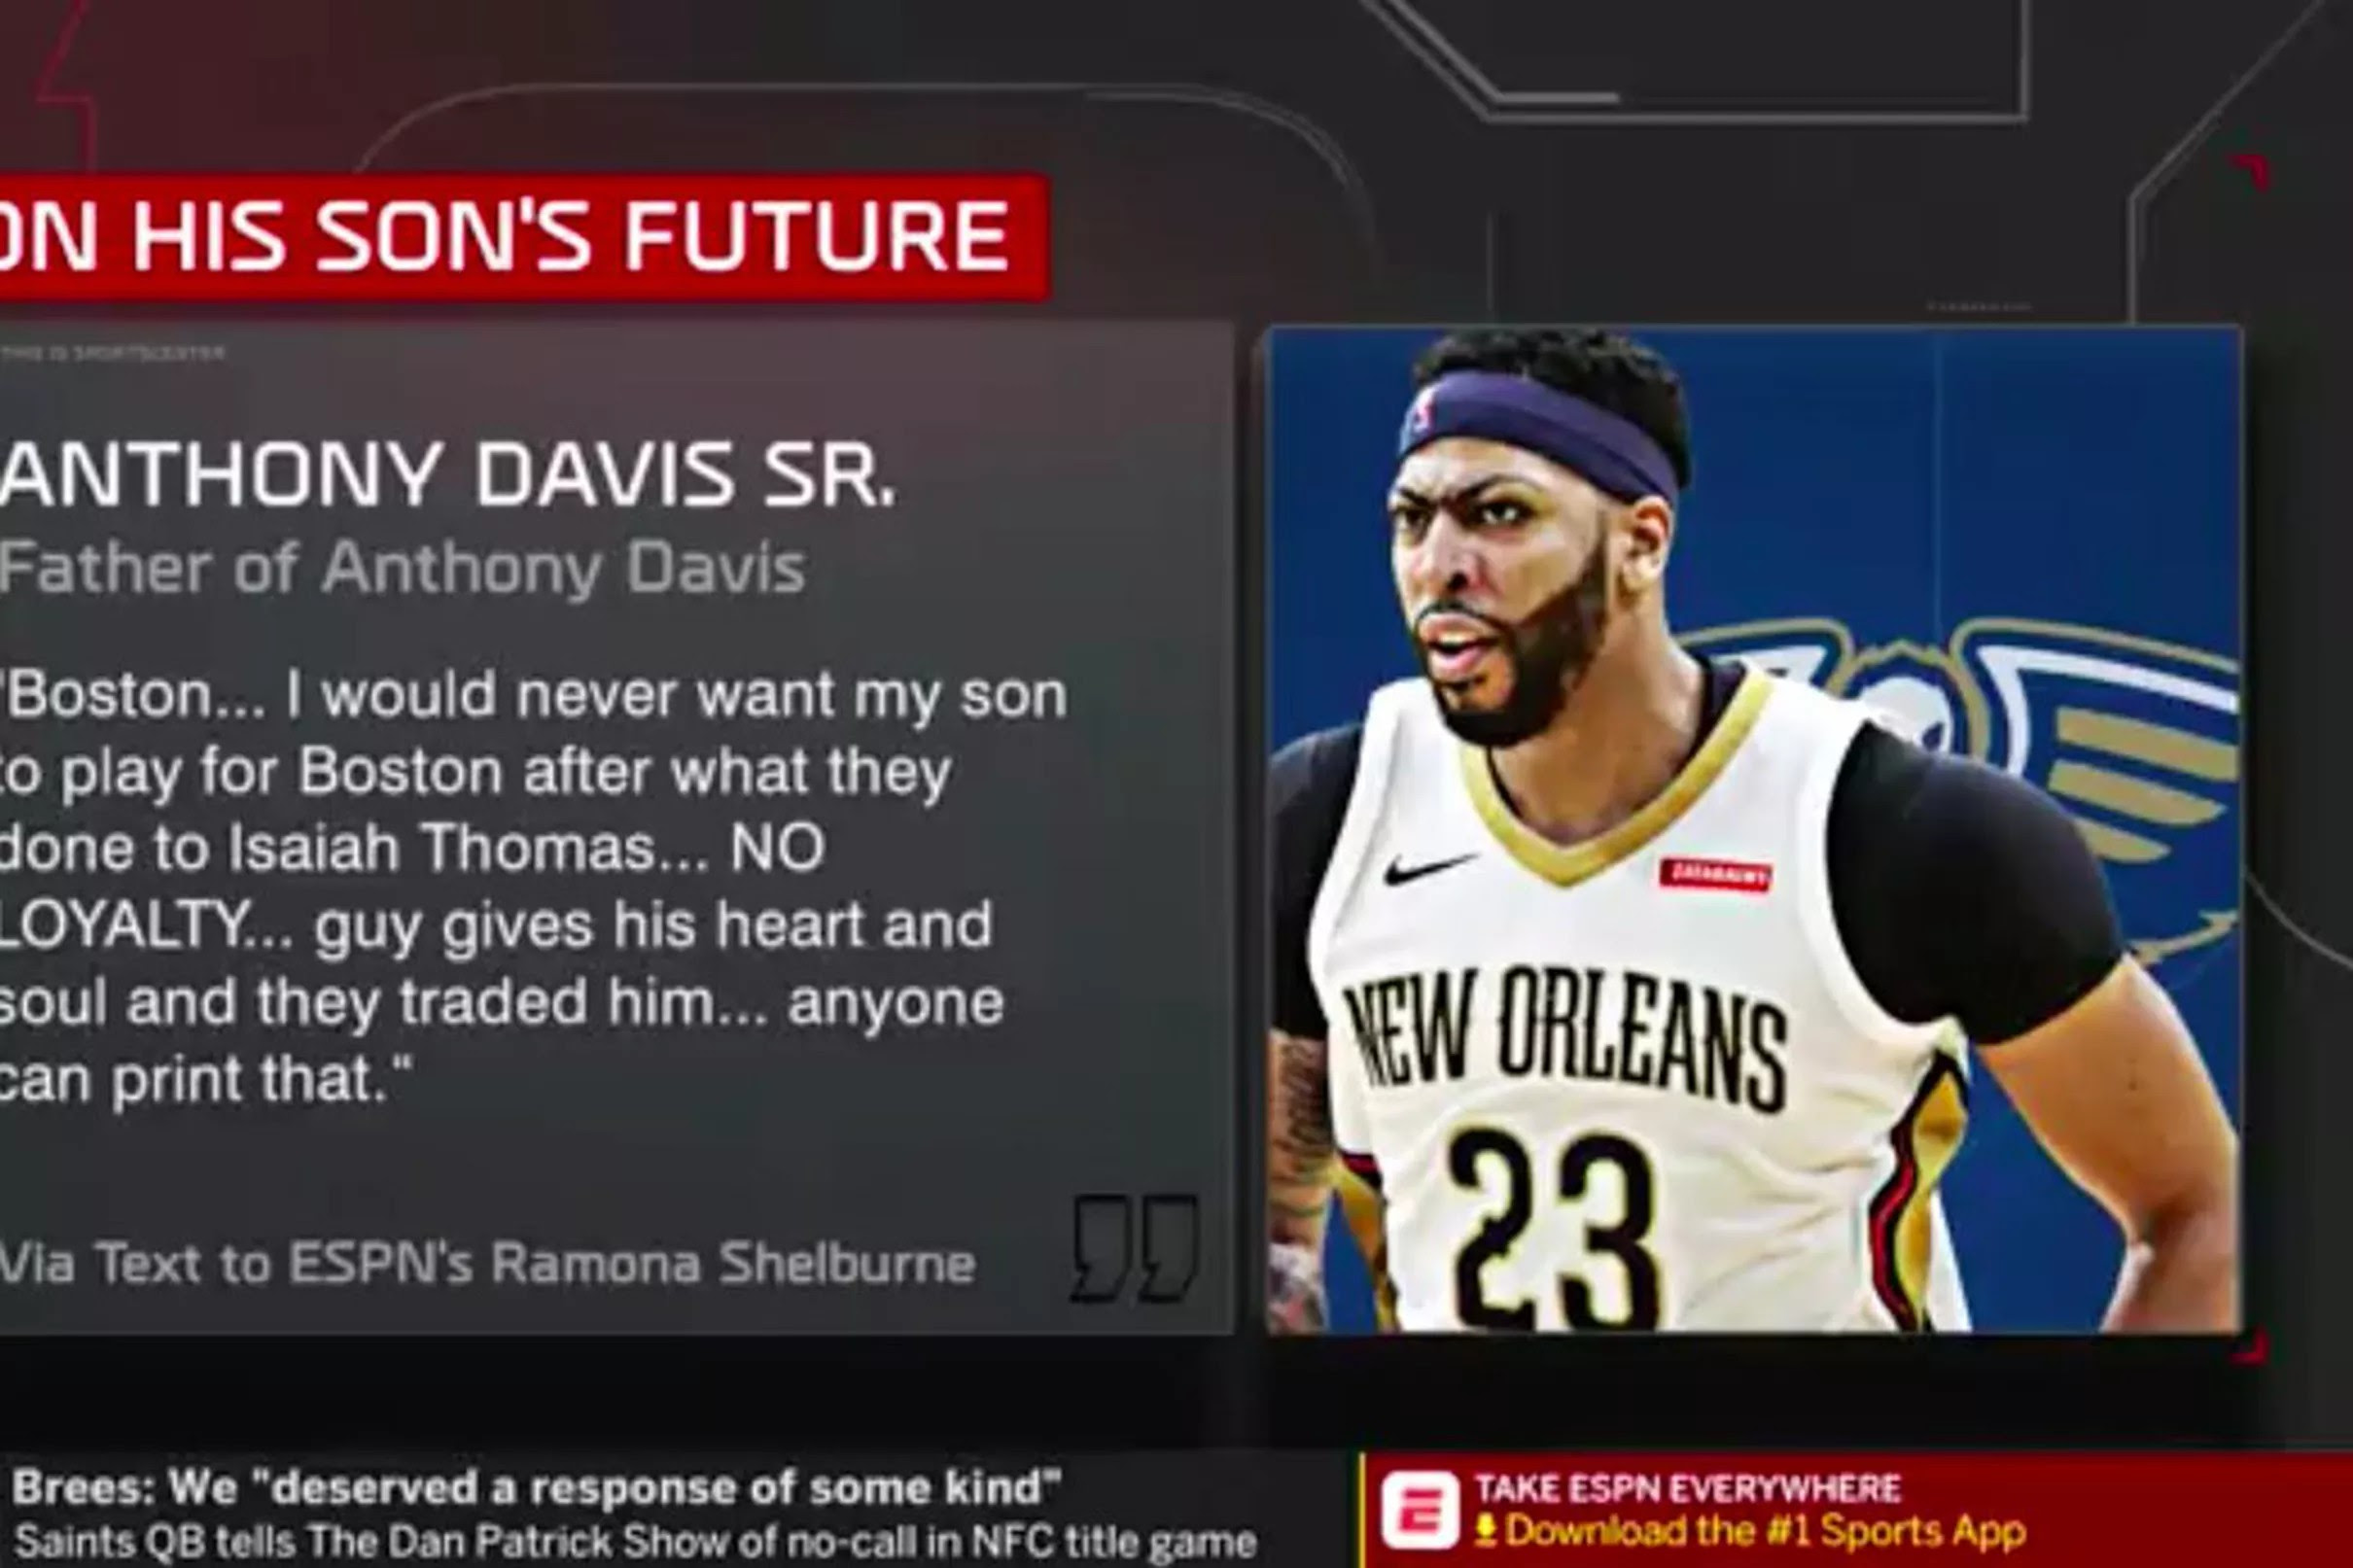 Anthony Davis Sr. says he would never want his son to play ...